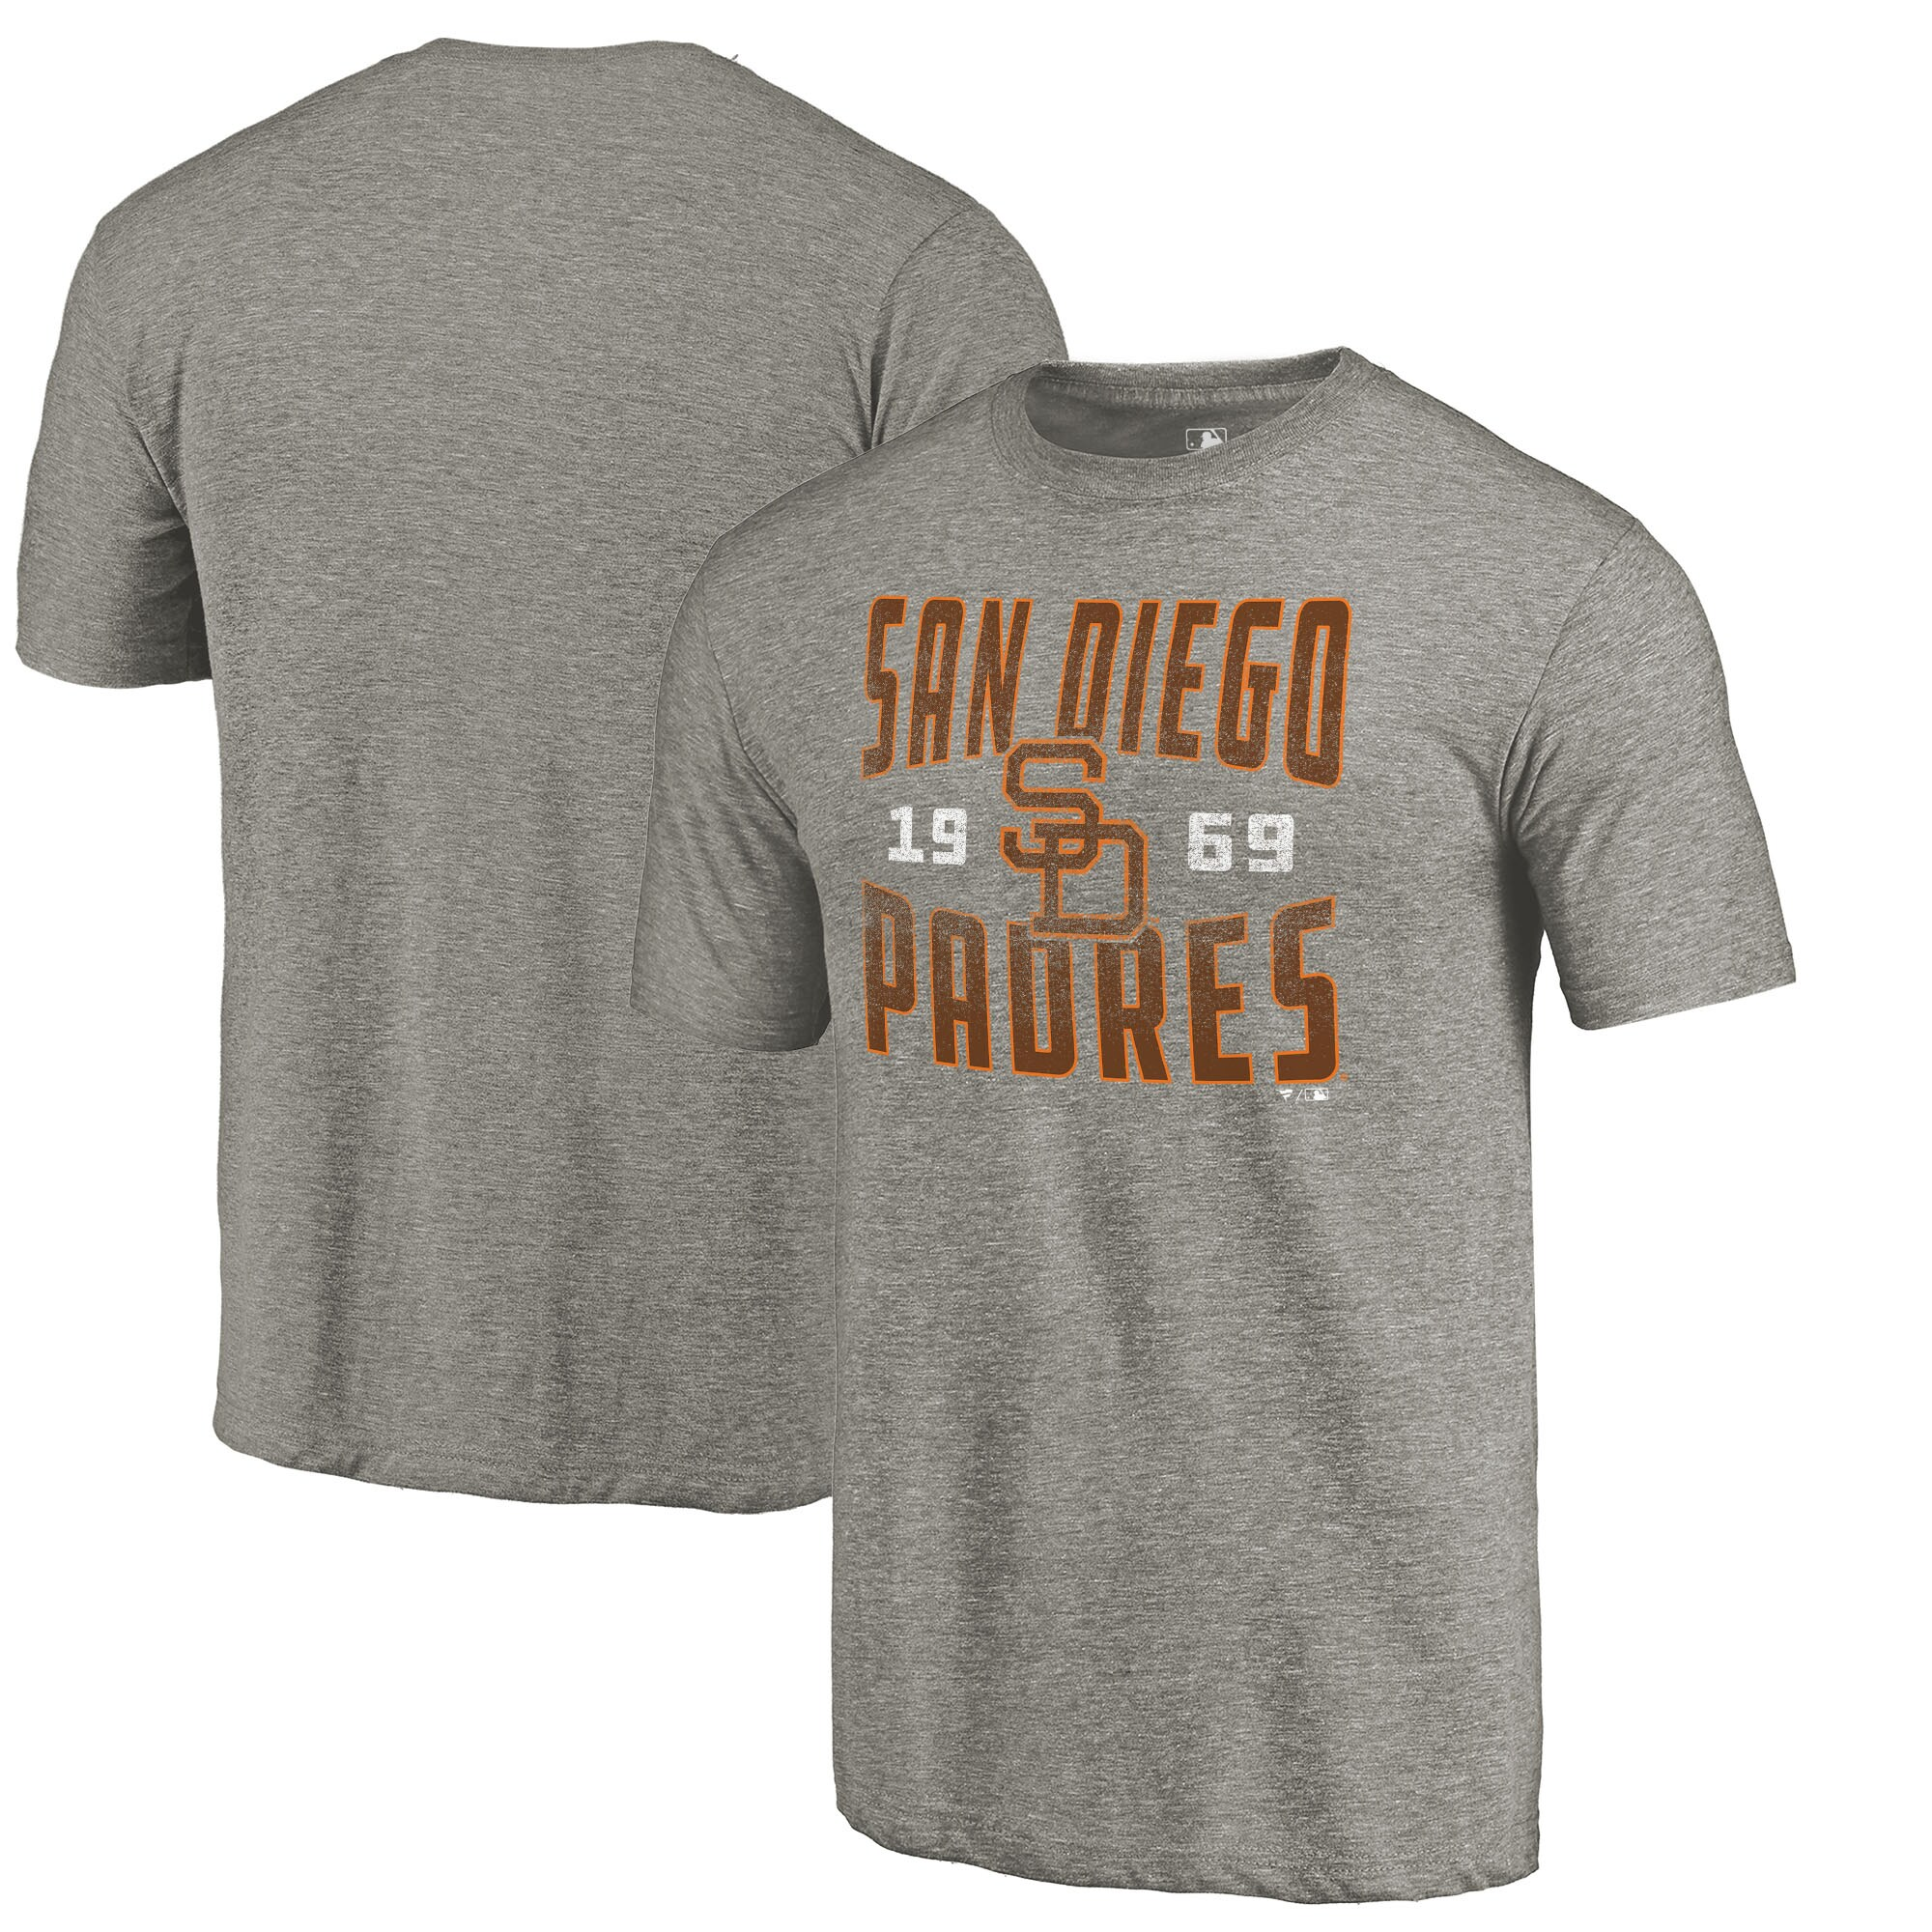 San Diego Padres Fanatics Branded Cooperstown Collection Antique Stack Tri-Blend T-Shirt - Gray